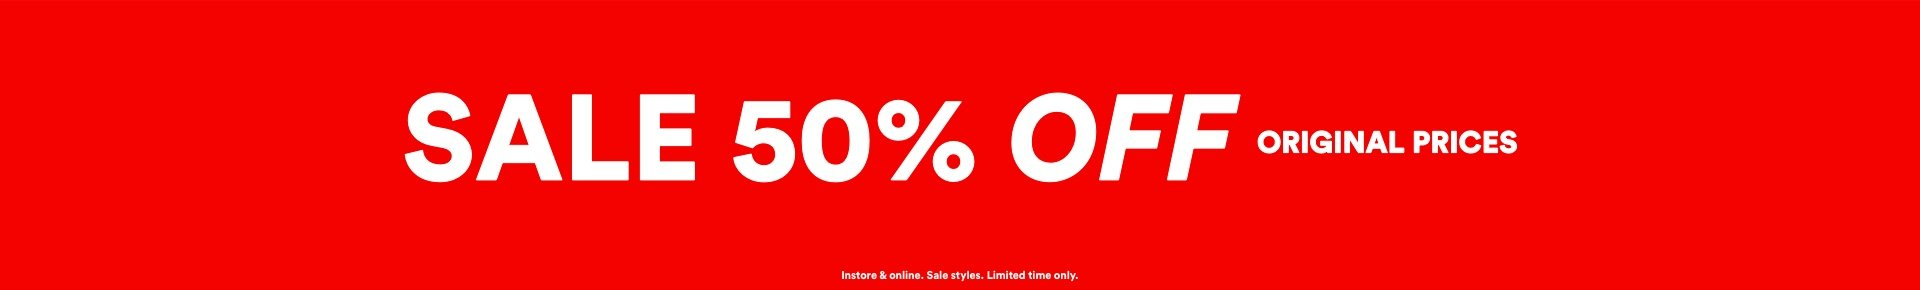 Sale 50% Off Original Prices